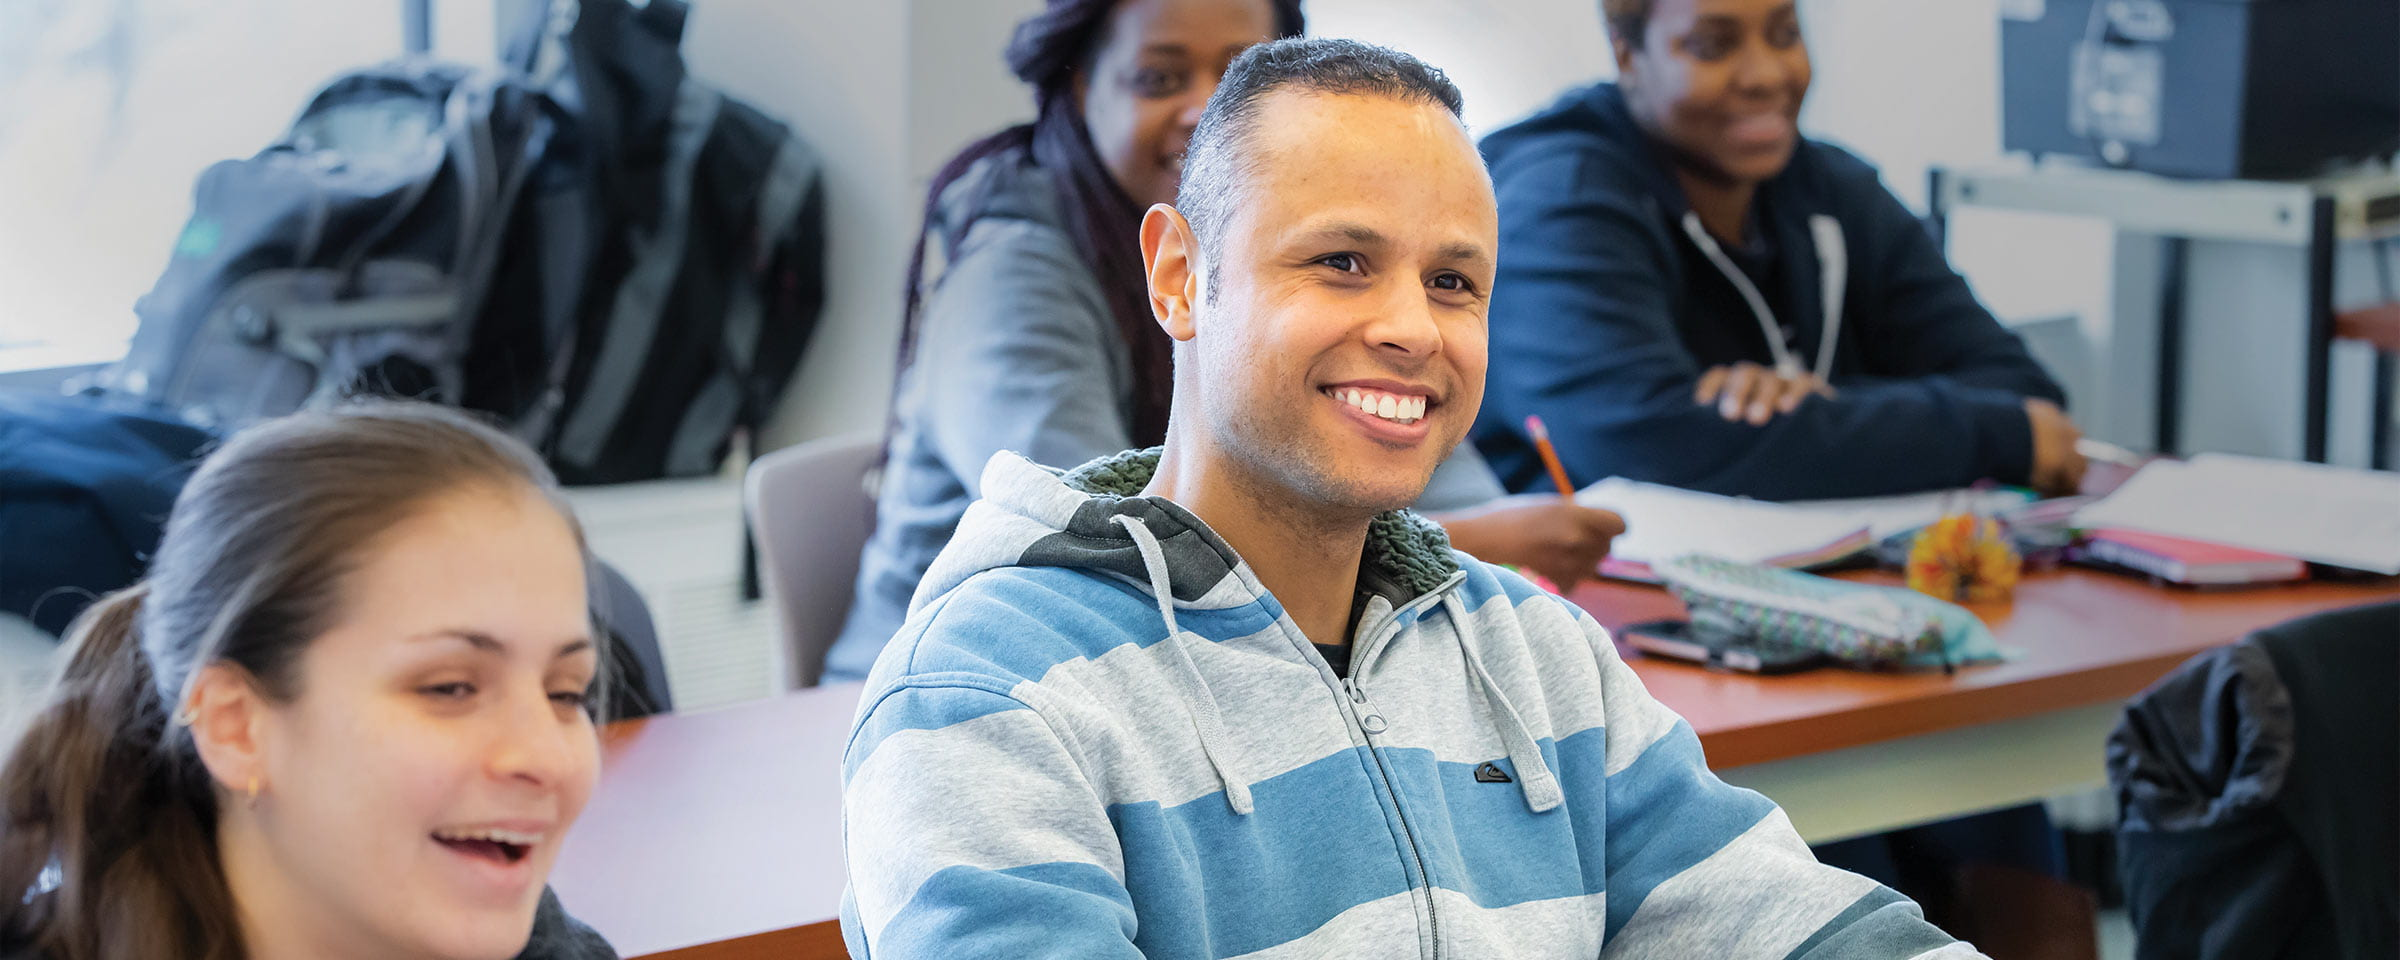 Smiling male student in classroom